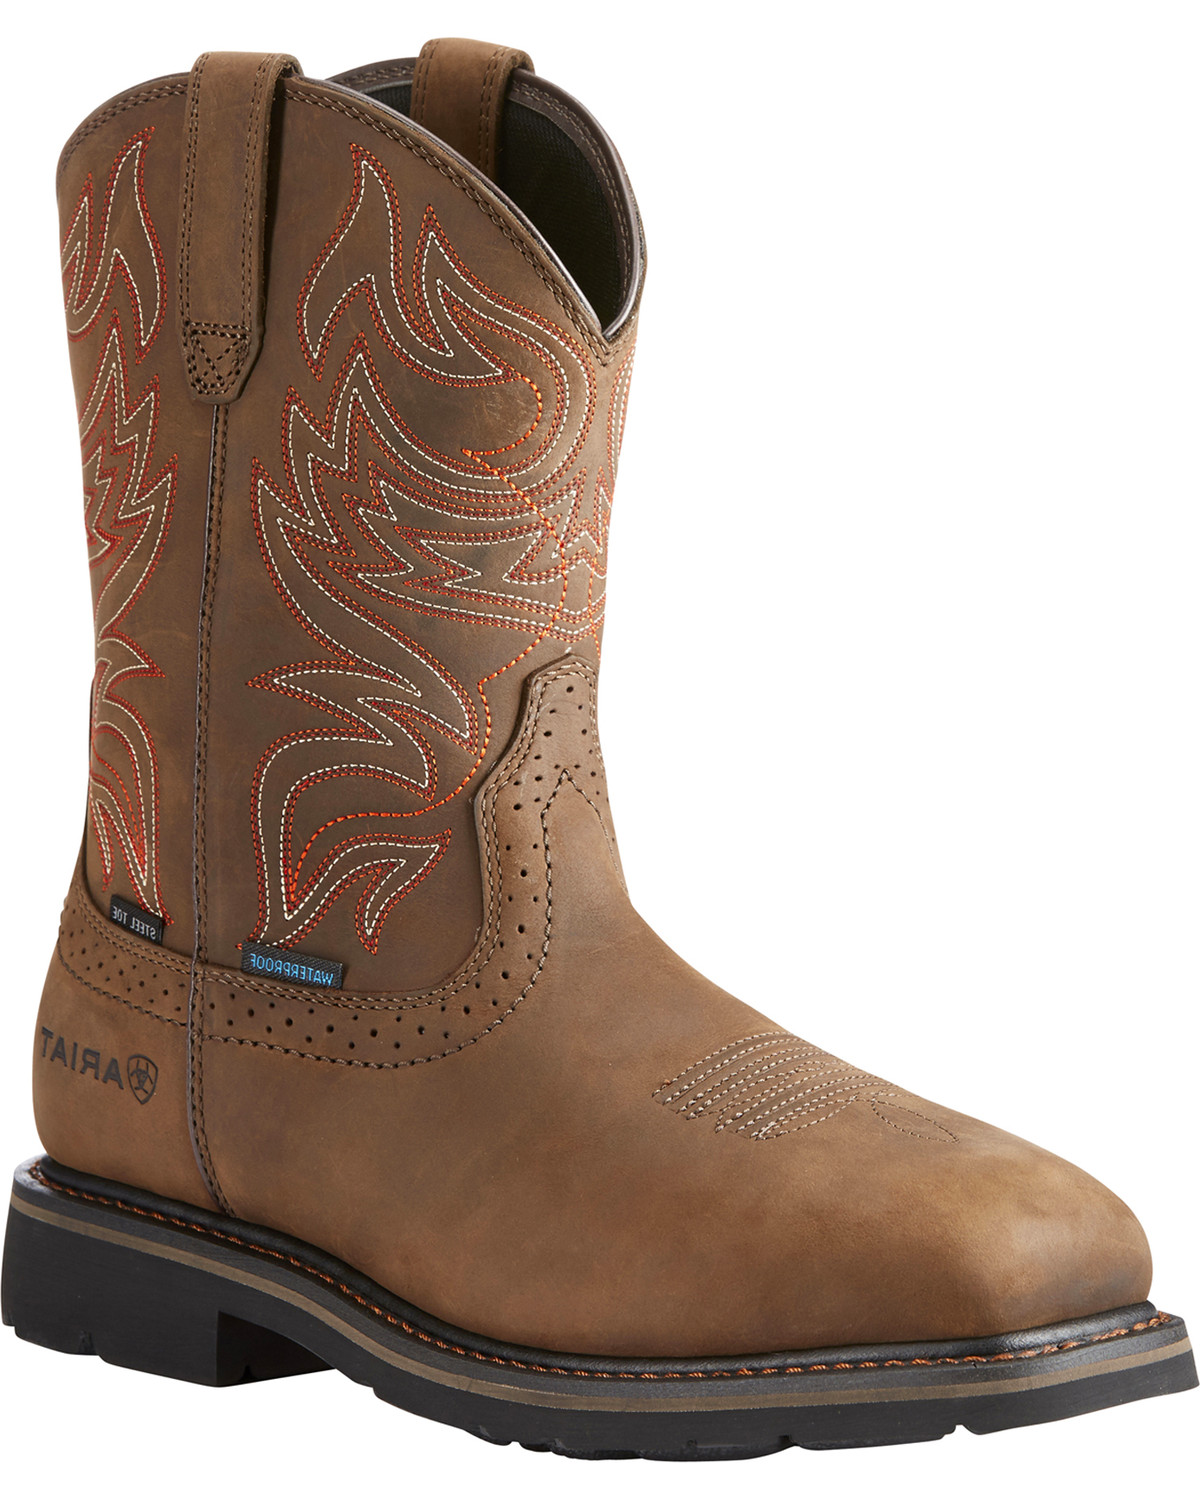 ARIAT Mens Work Boot Fire and Safety Shoe Clothing, Shoes & Jewelry Shops